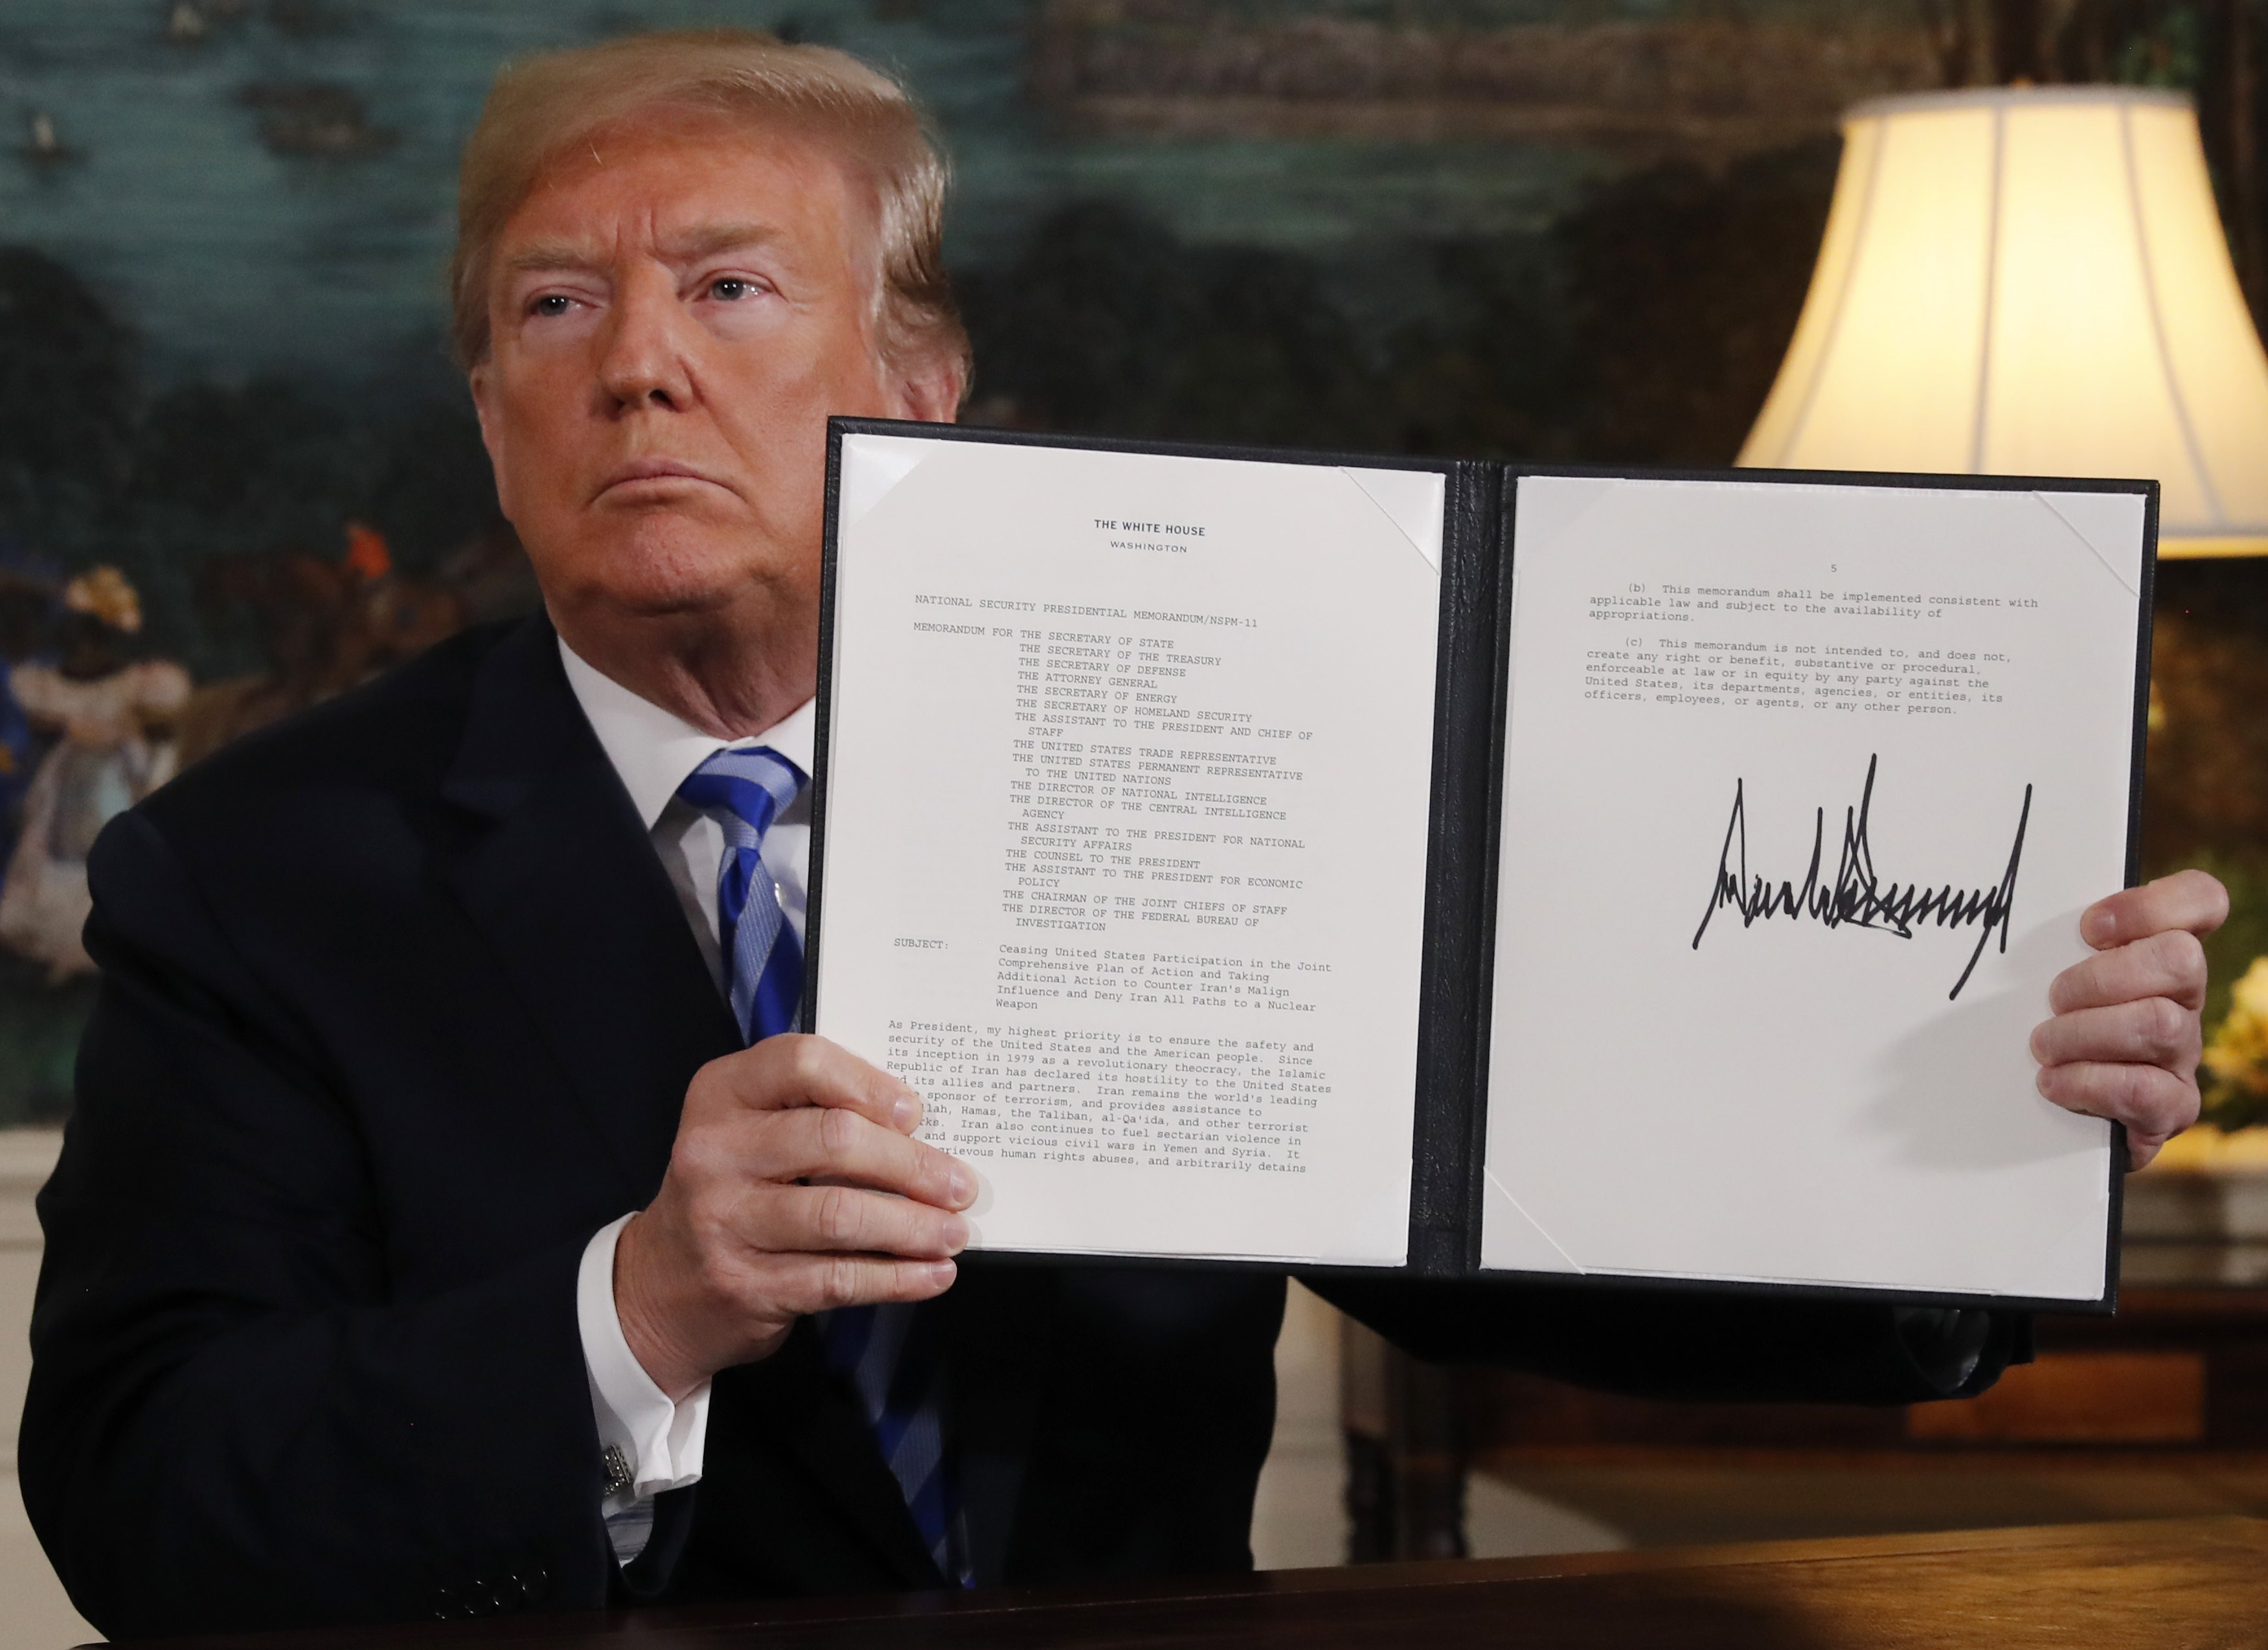 U.S. President Donald Trump displays a presidential memorandum after announcing his intent to withdraw from the JCPOA Iran nuclear agreement in the Diplomatic Room at the White House in Washington, U.S., May 8, 2018. REUTERS/Jonathan Ernst